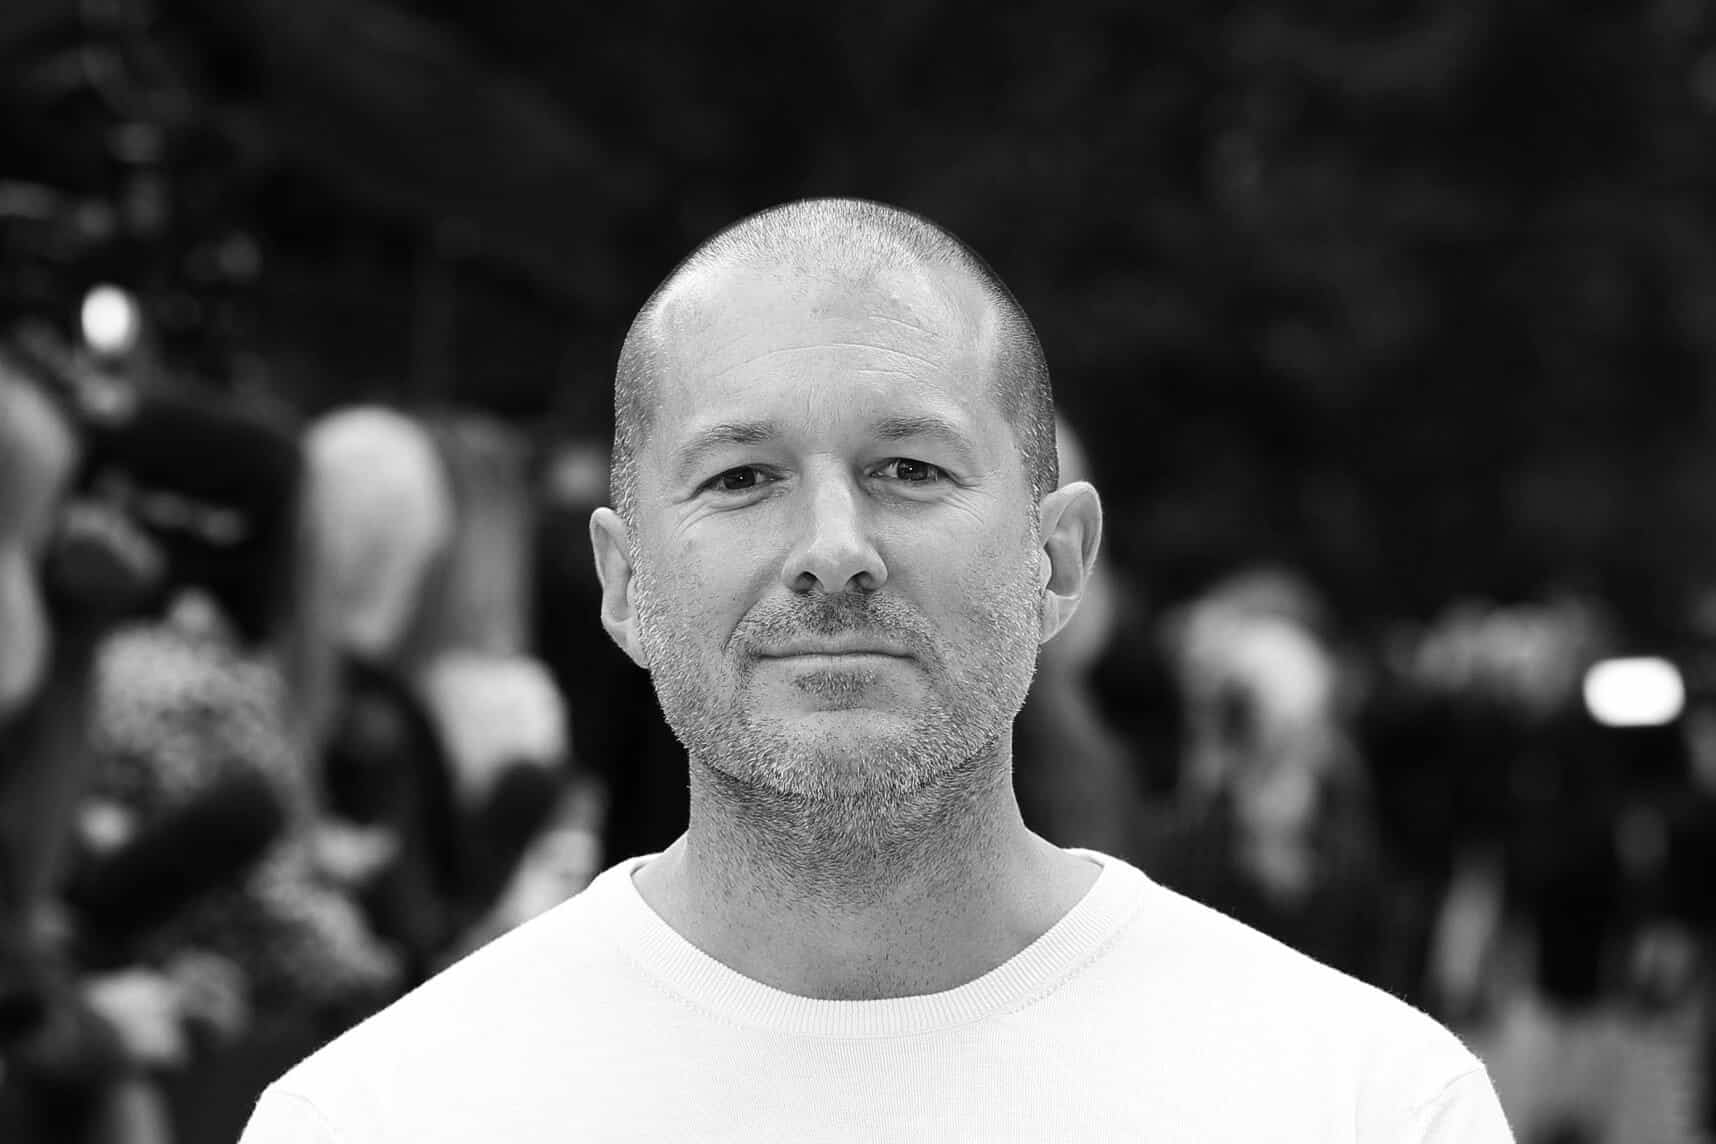 Jony Ive's bio removed from Apple's leadership page 1